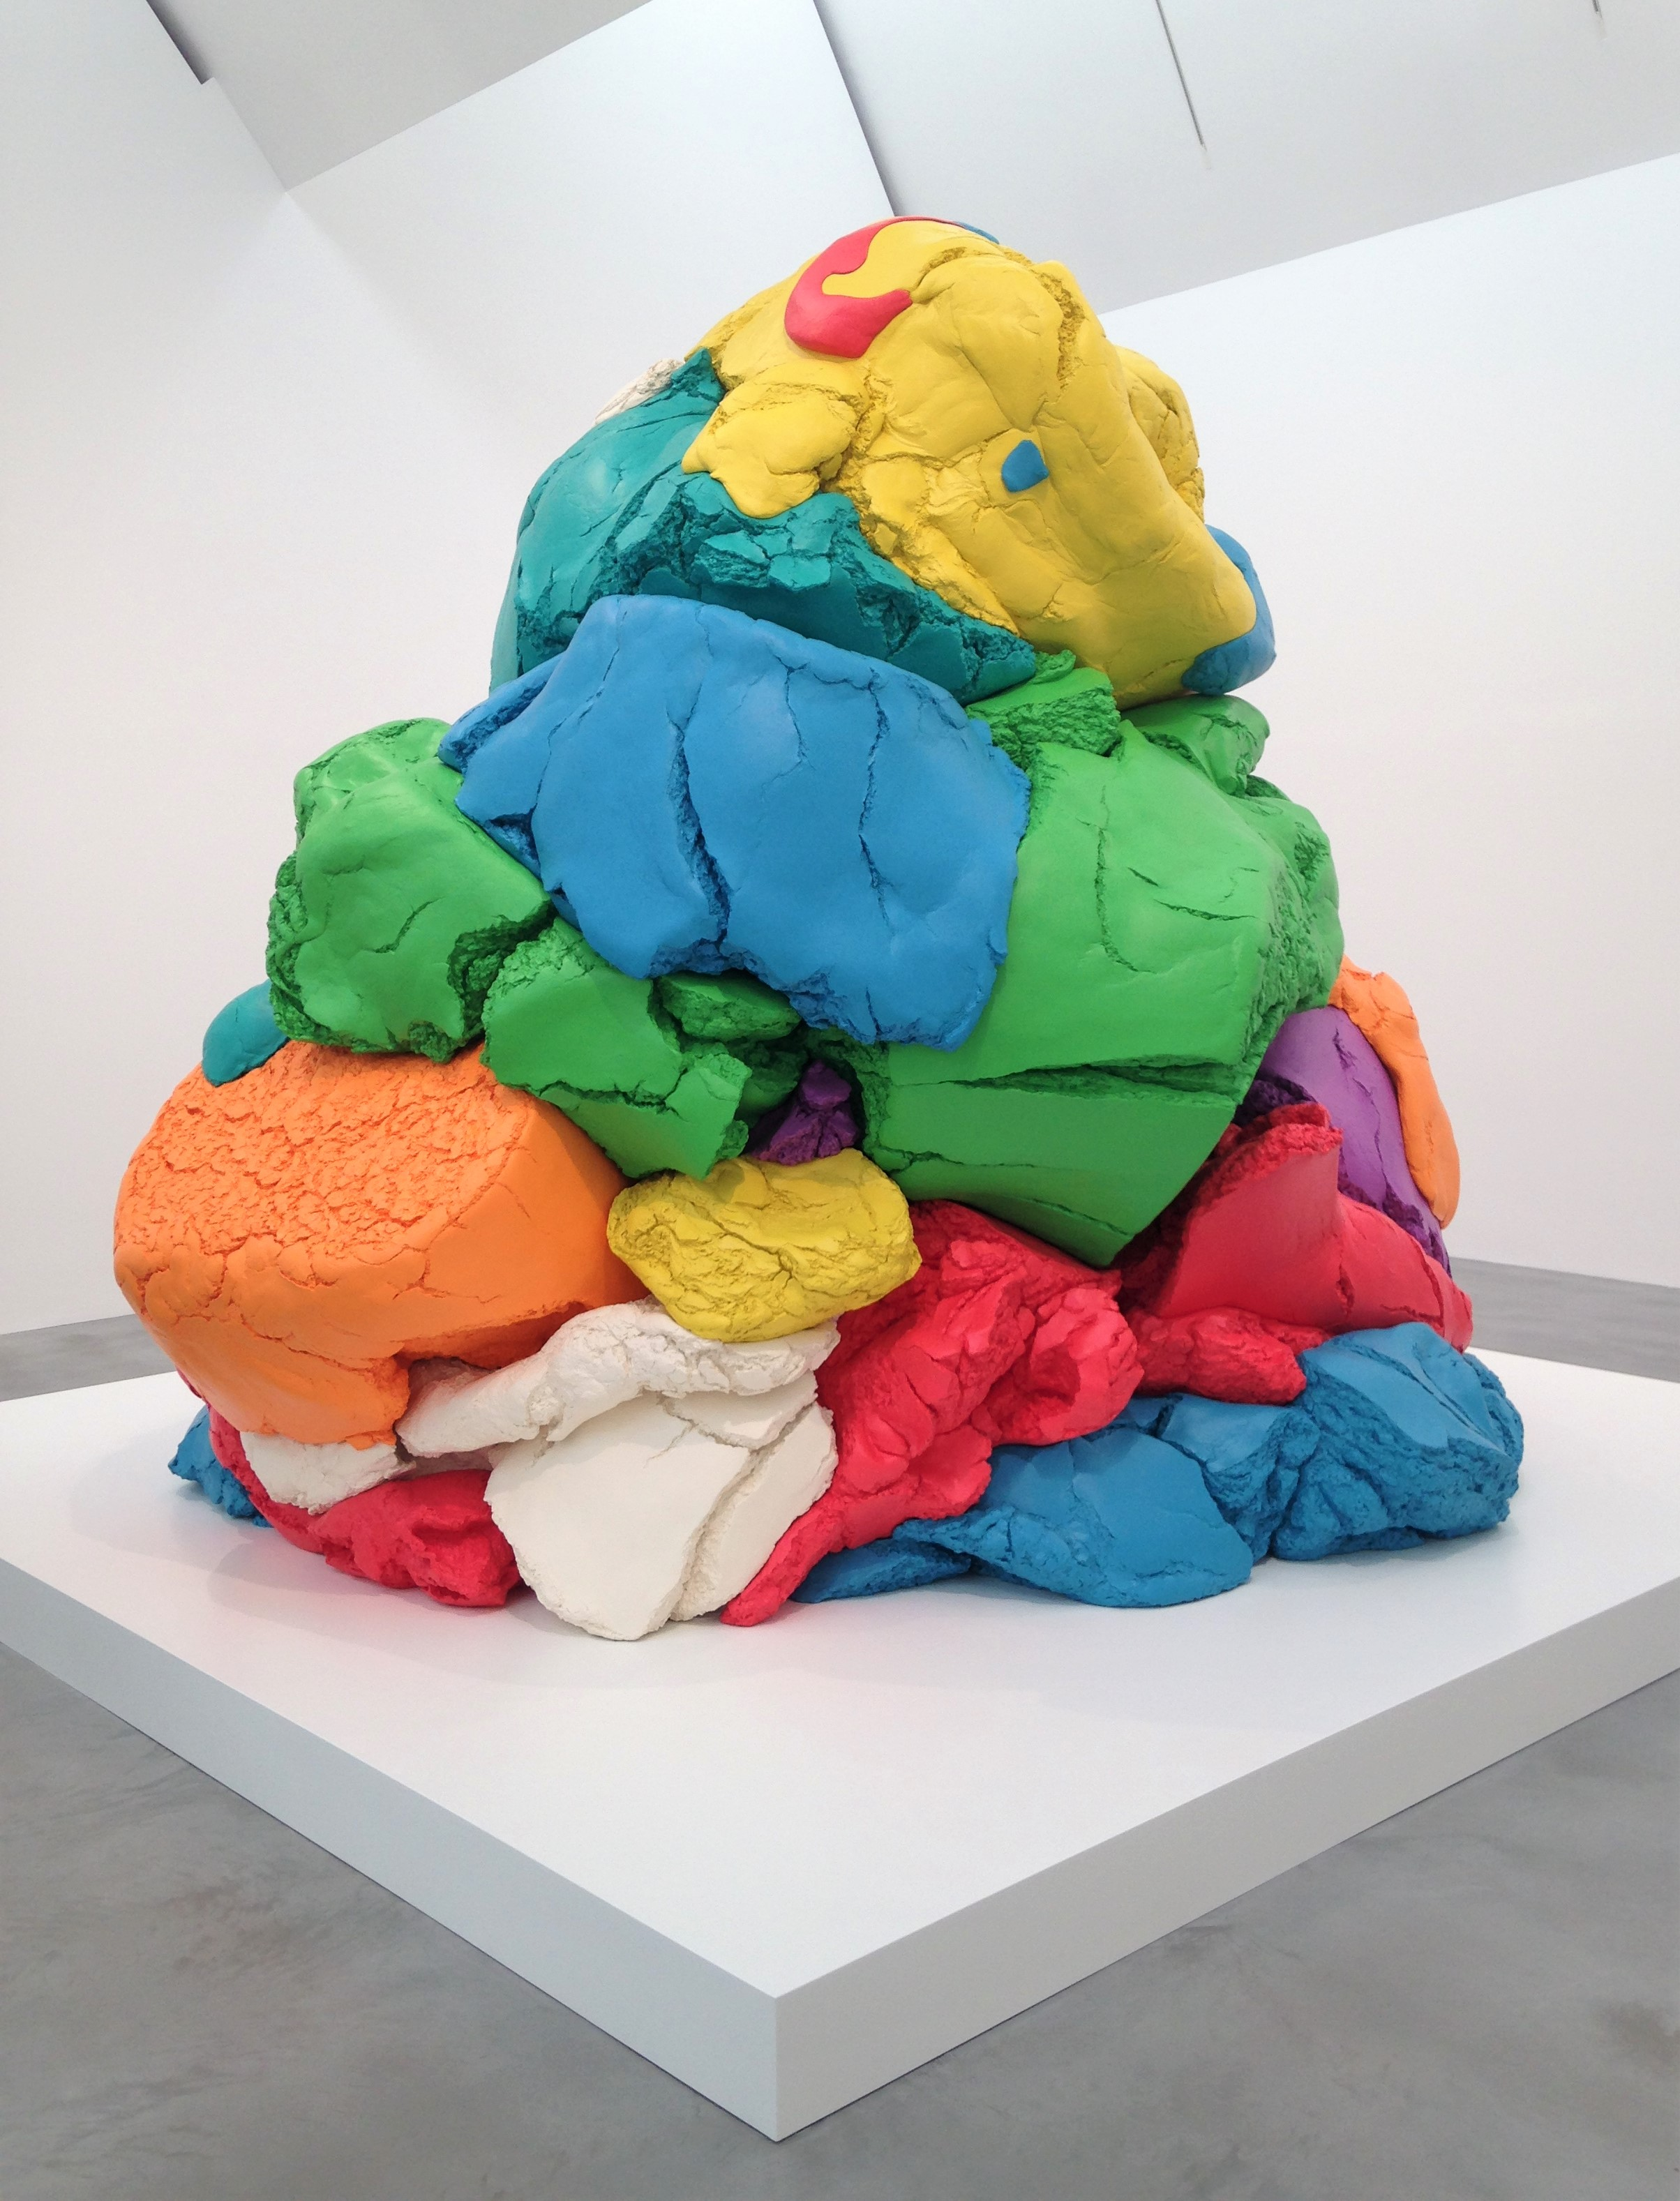 Play-Doh - Jeff Koons Now at Newport Street Gallery - kenningtonrunoff@gmail.com